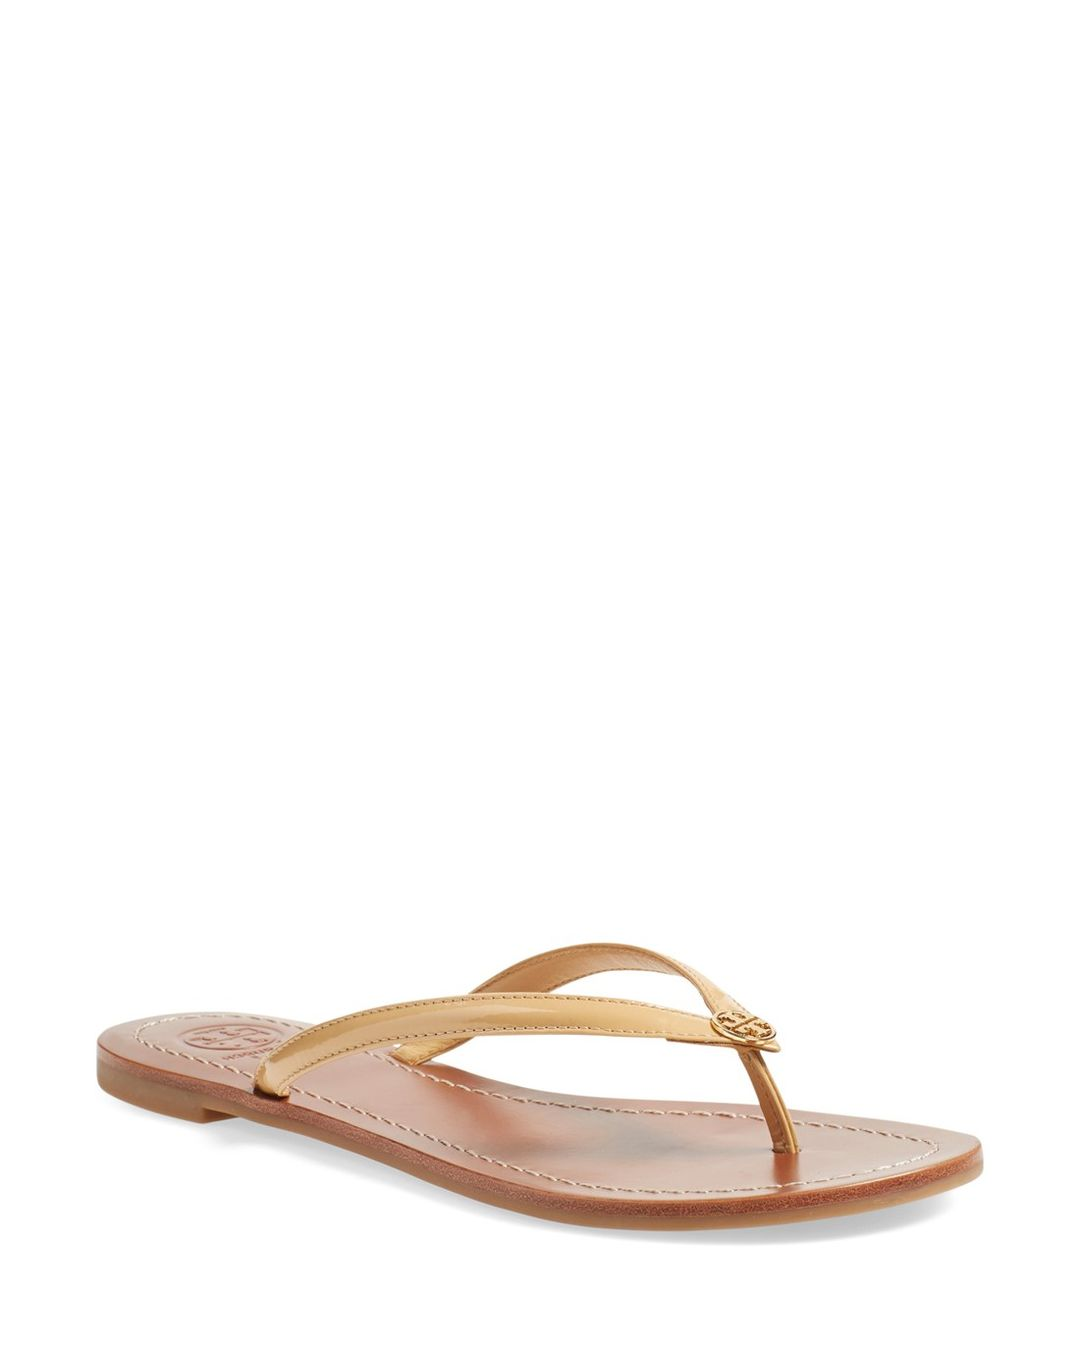 0407abc1fd3c Tory Burch Terra Flip Flop Reviews and Sizing – Only Best Shoes